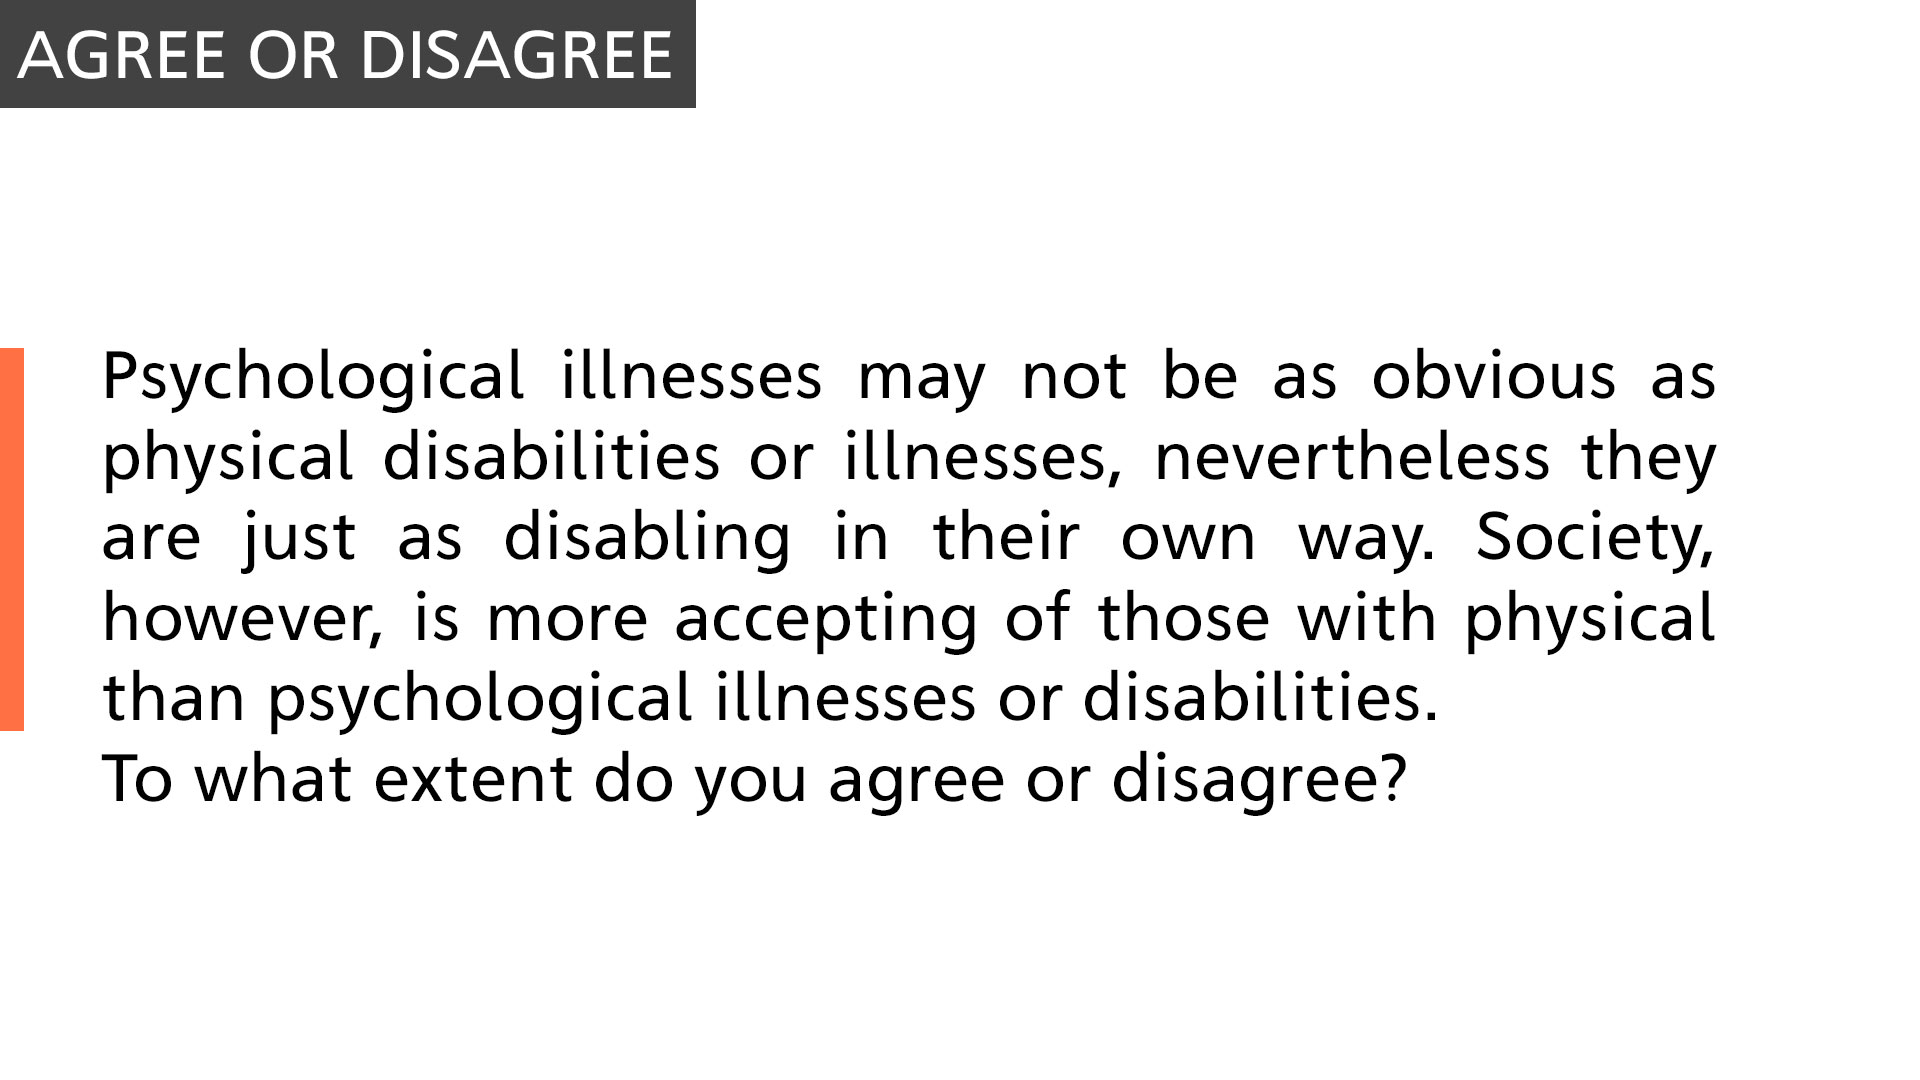 Psychological illnesses may not be as obvious as physical disabilities